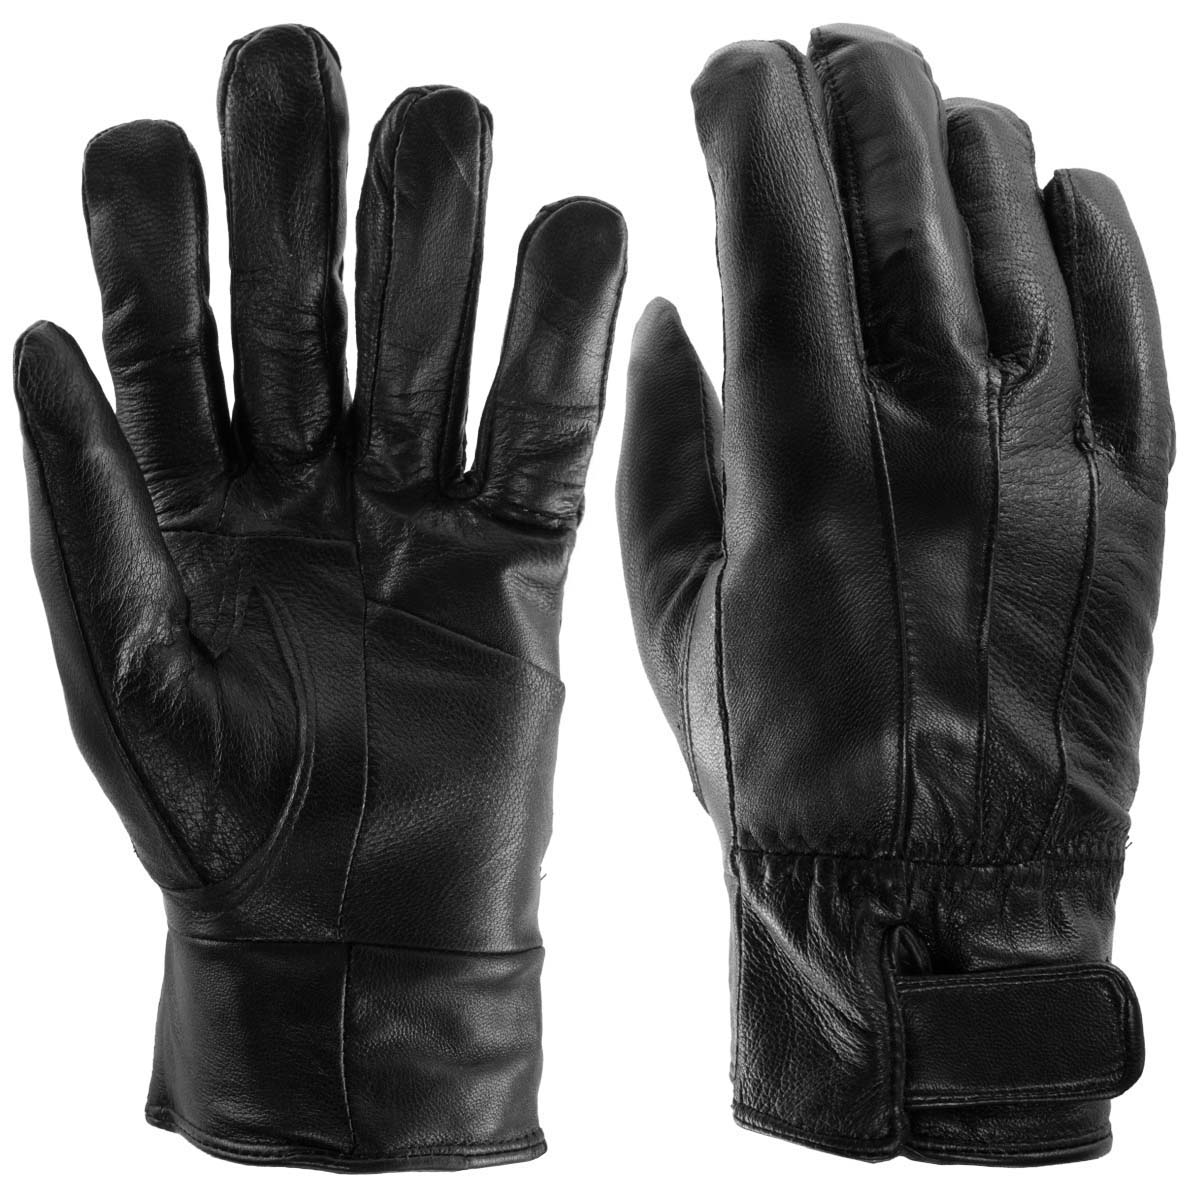 Sole Trends (1 Pair) Insulated Genuine Leather Gloves For Men Black Warm Light Fleece Lining Winter